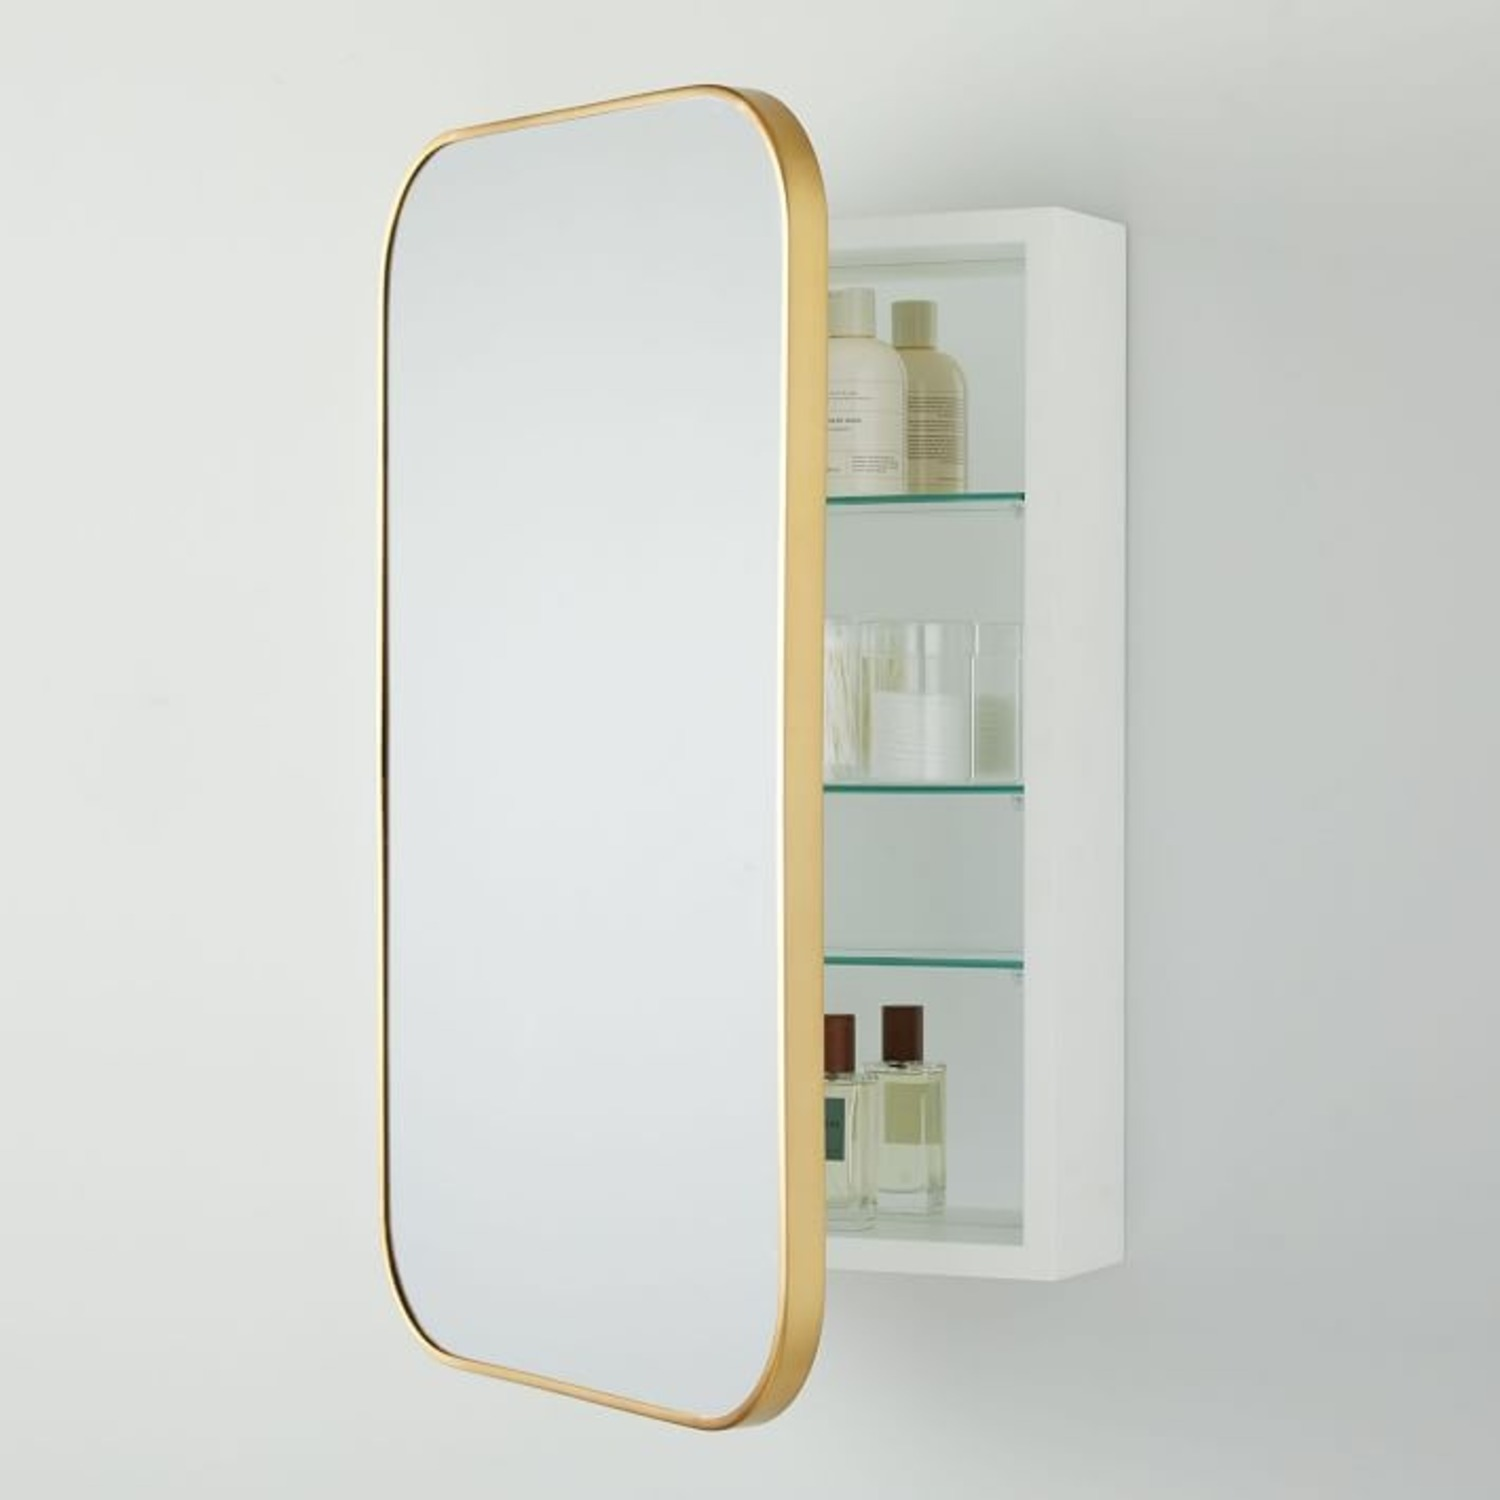 West Elm Seamless Medicine Cabinets, Antique Brass - image-3